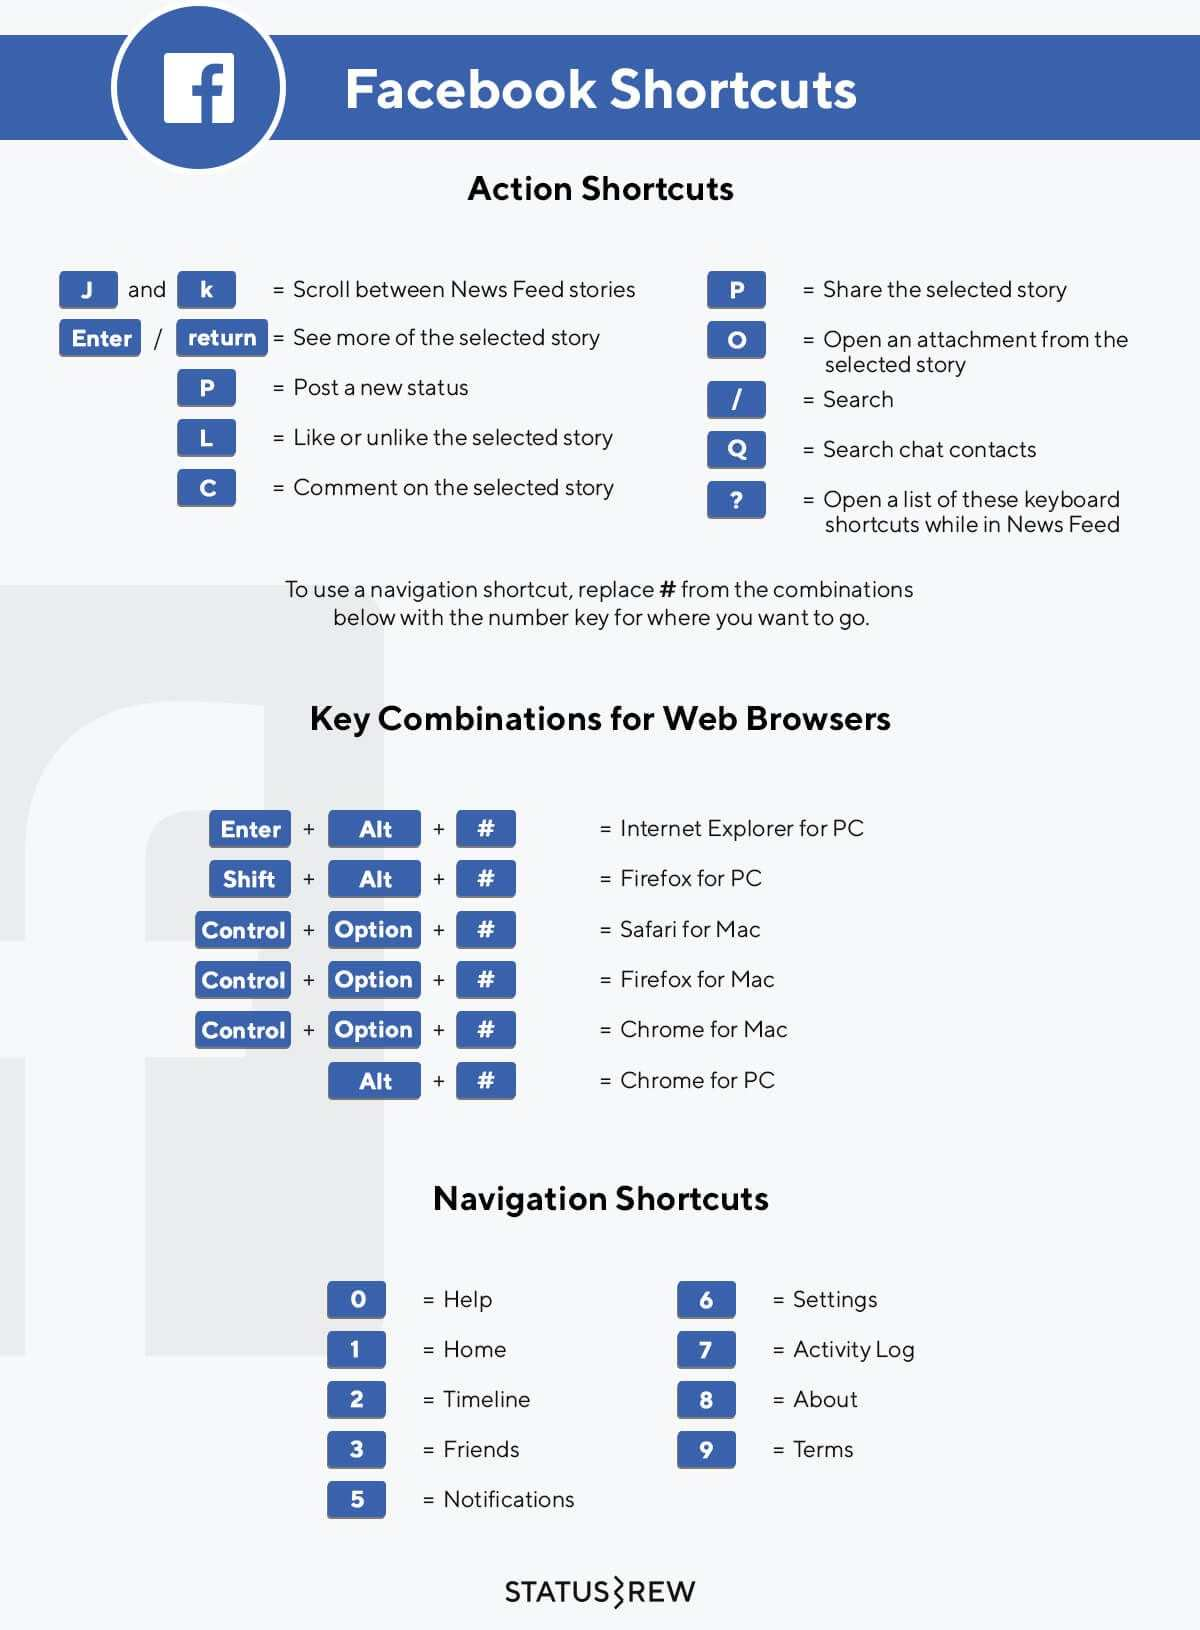 Facebook Keyboard Shortcuts Infographic